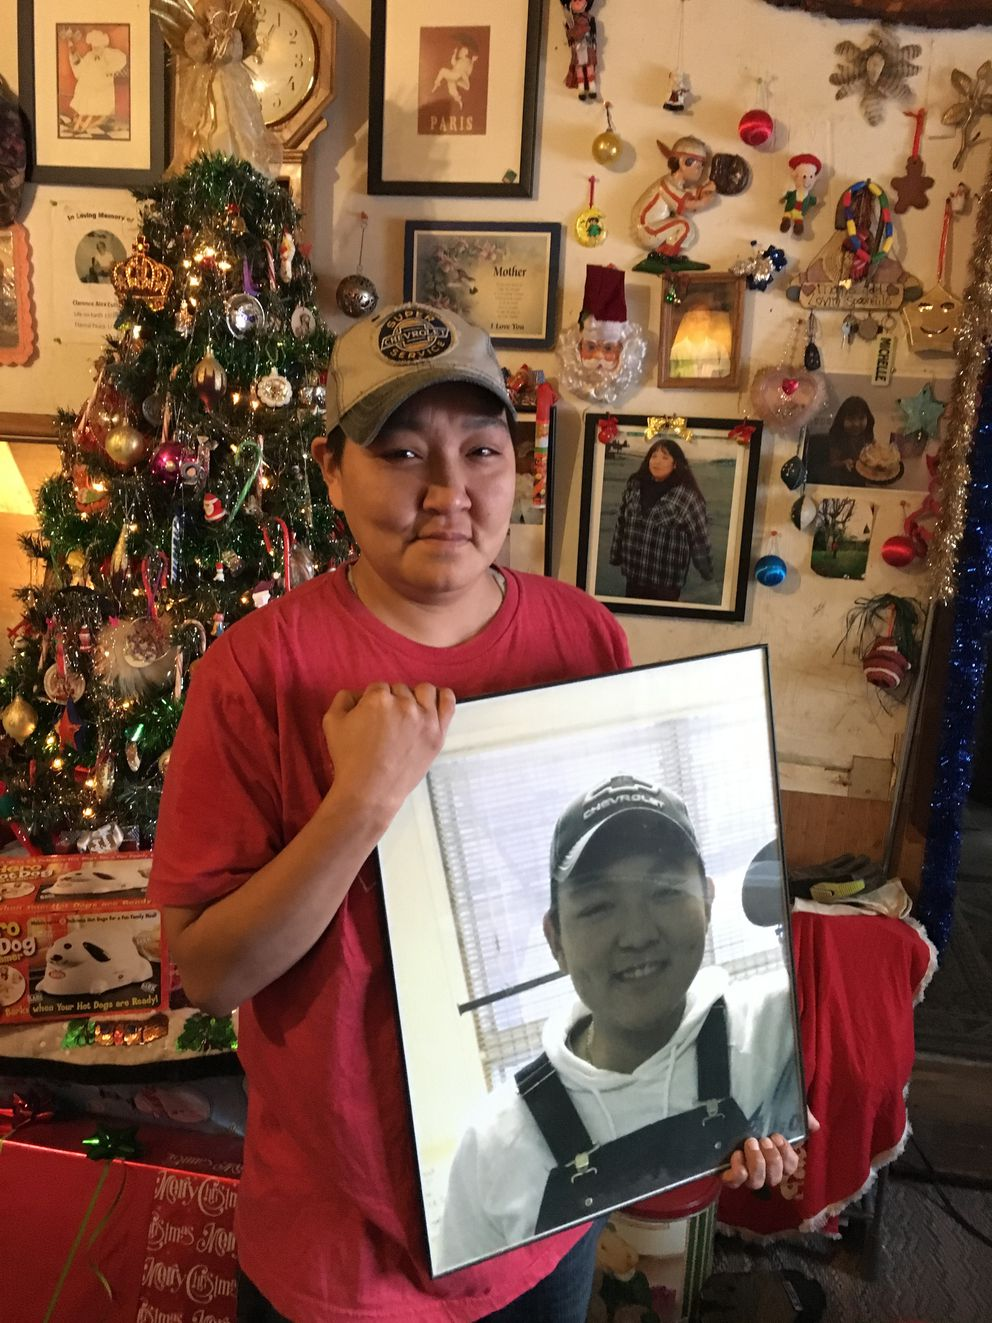 Michelle Woodford holds a portrait of her son Frank Woodford in her home in Caswell Lakes on Jan. 2, 2017. Frank died in June after being shot. (Zaz Hollander / Alaska Dispatch News)